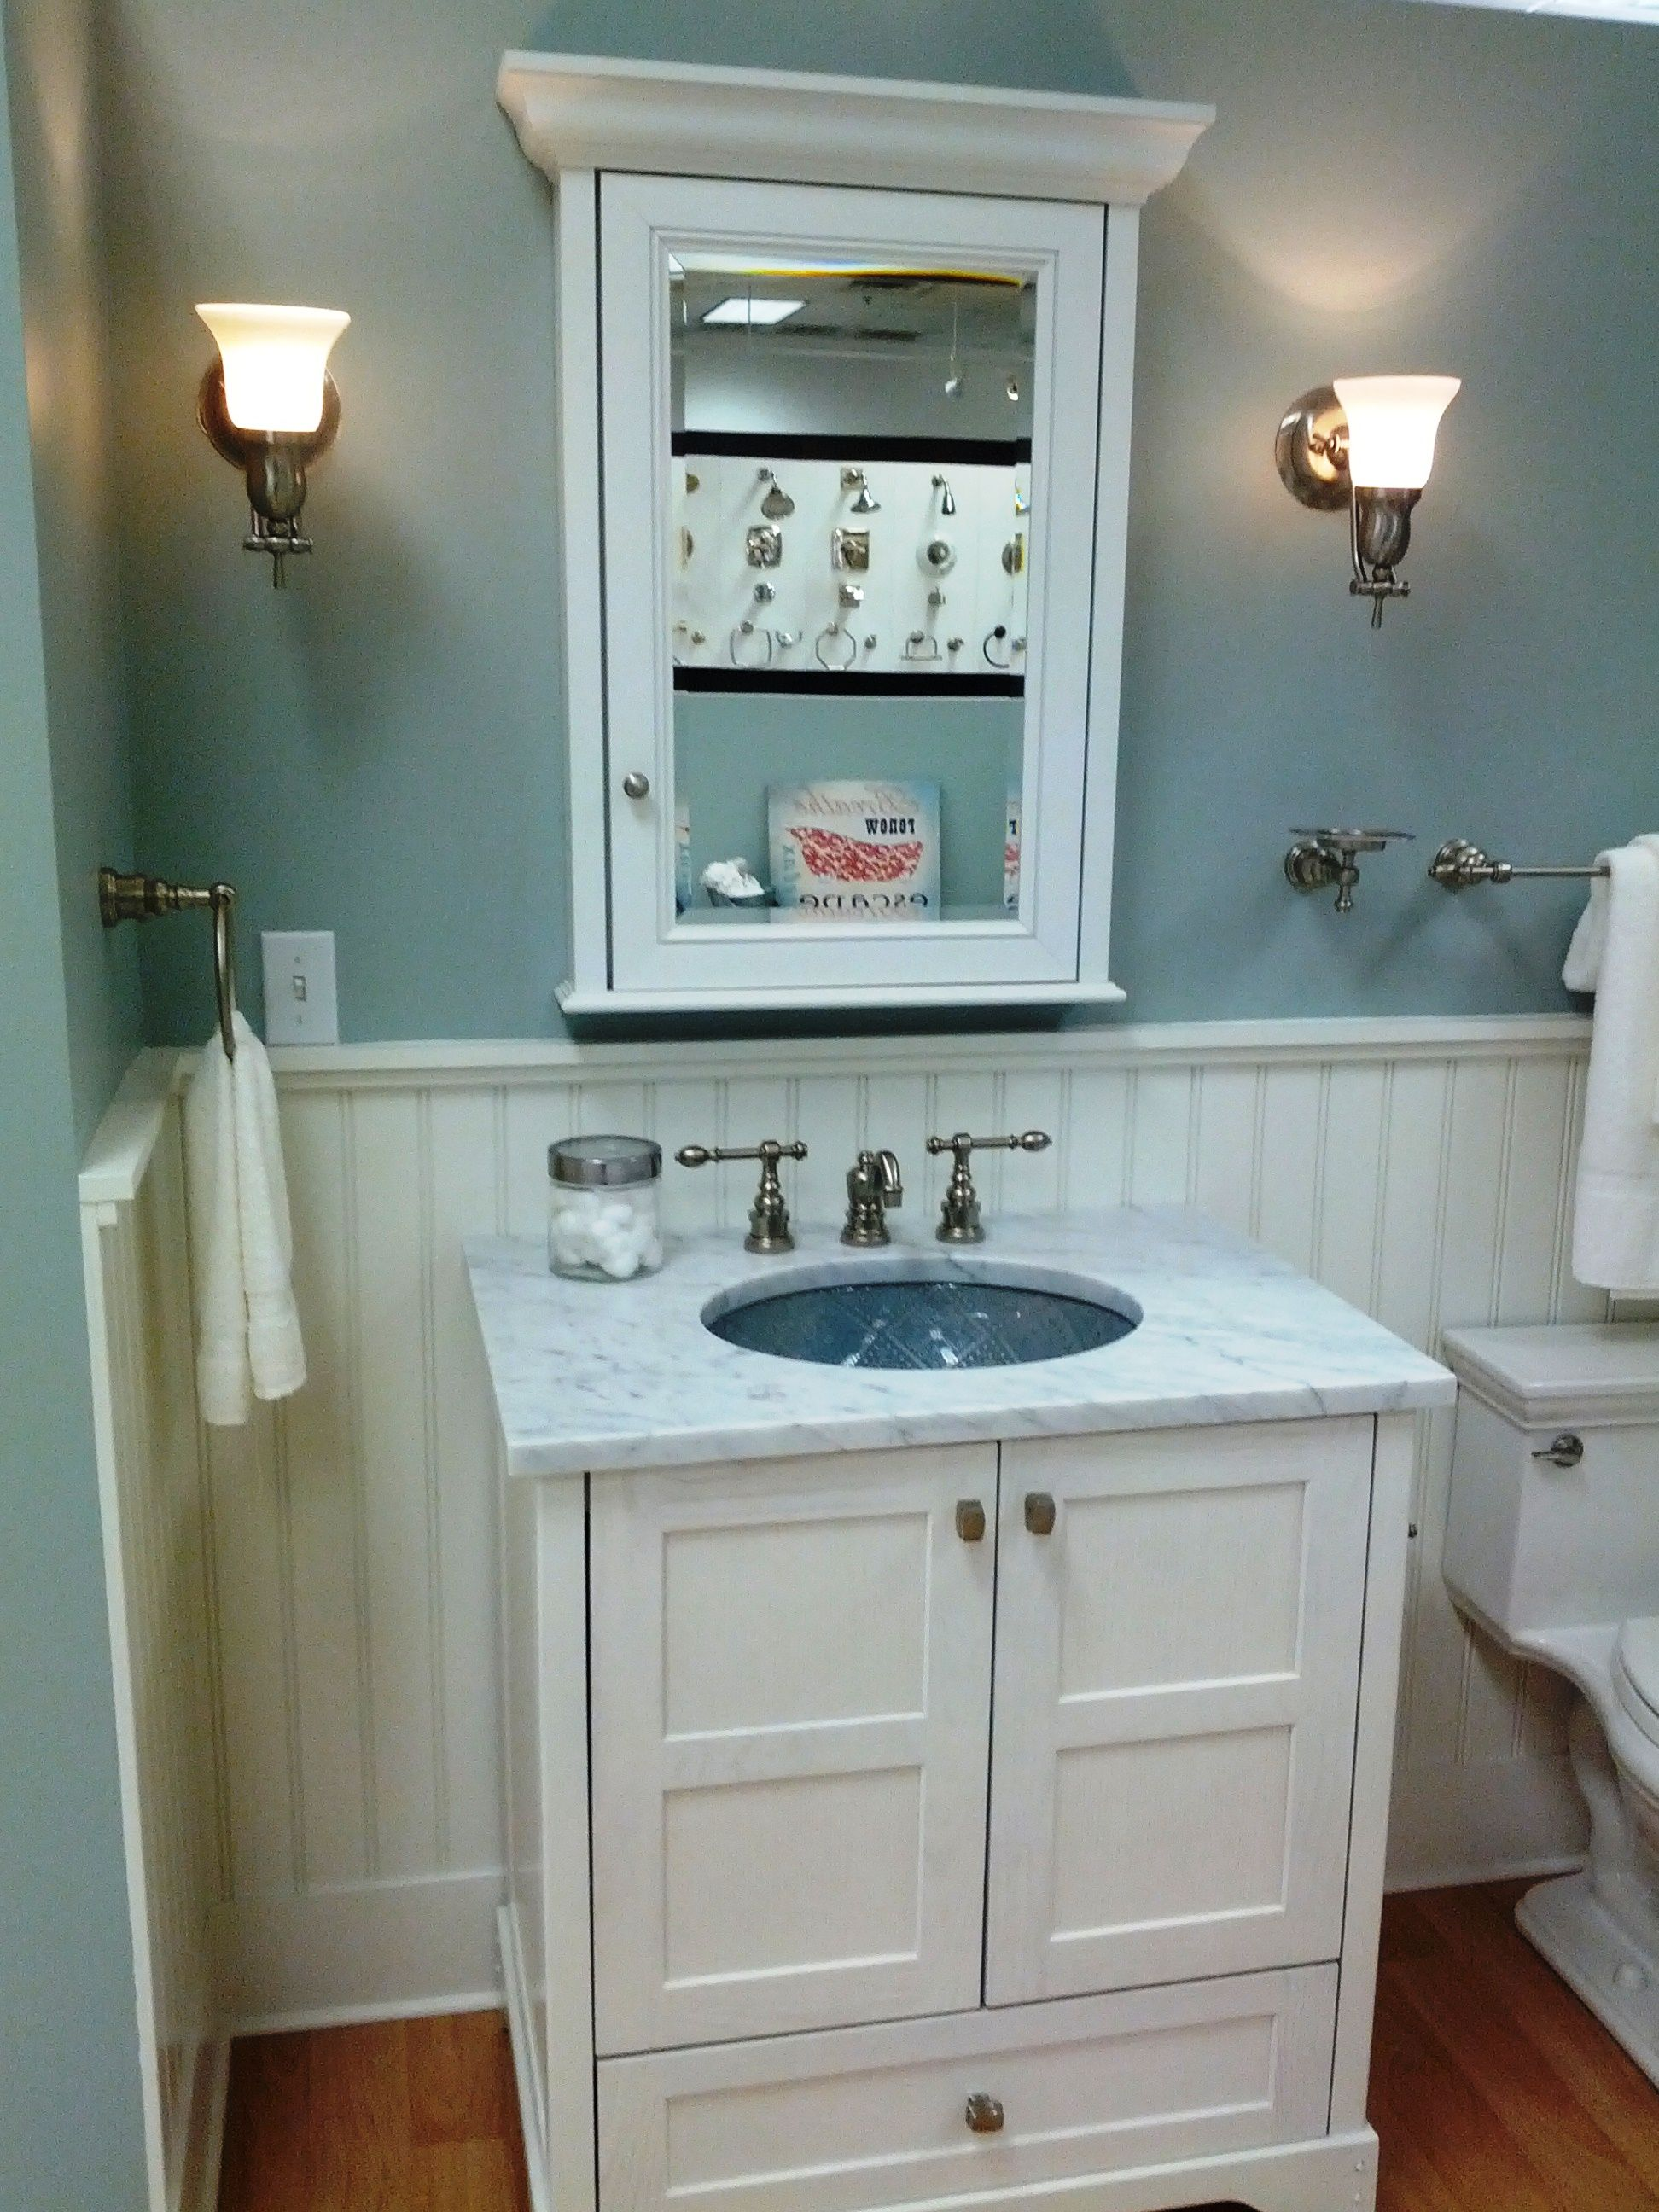 roomcolorswainscoting white wainscoting tub base with medium blue wall color a small bathroom decoratingideas